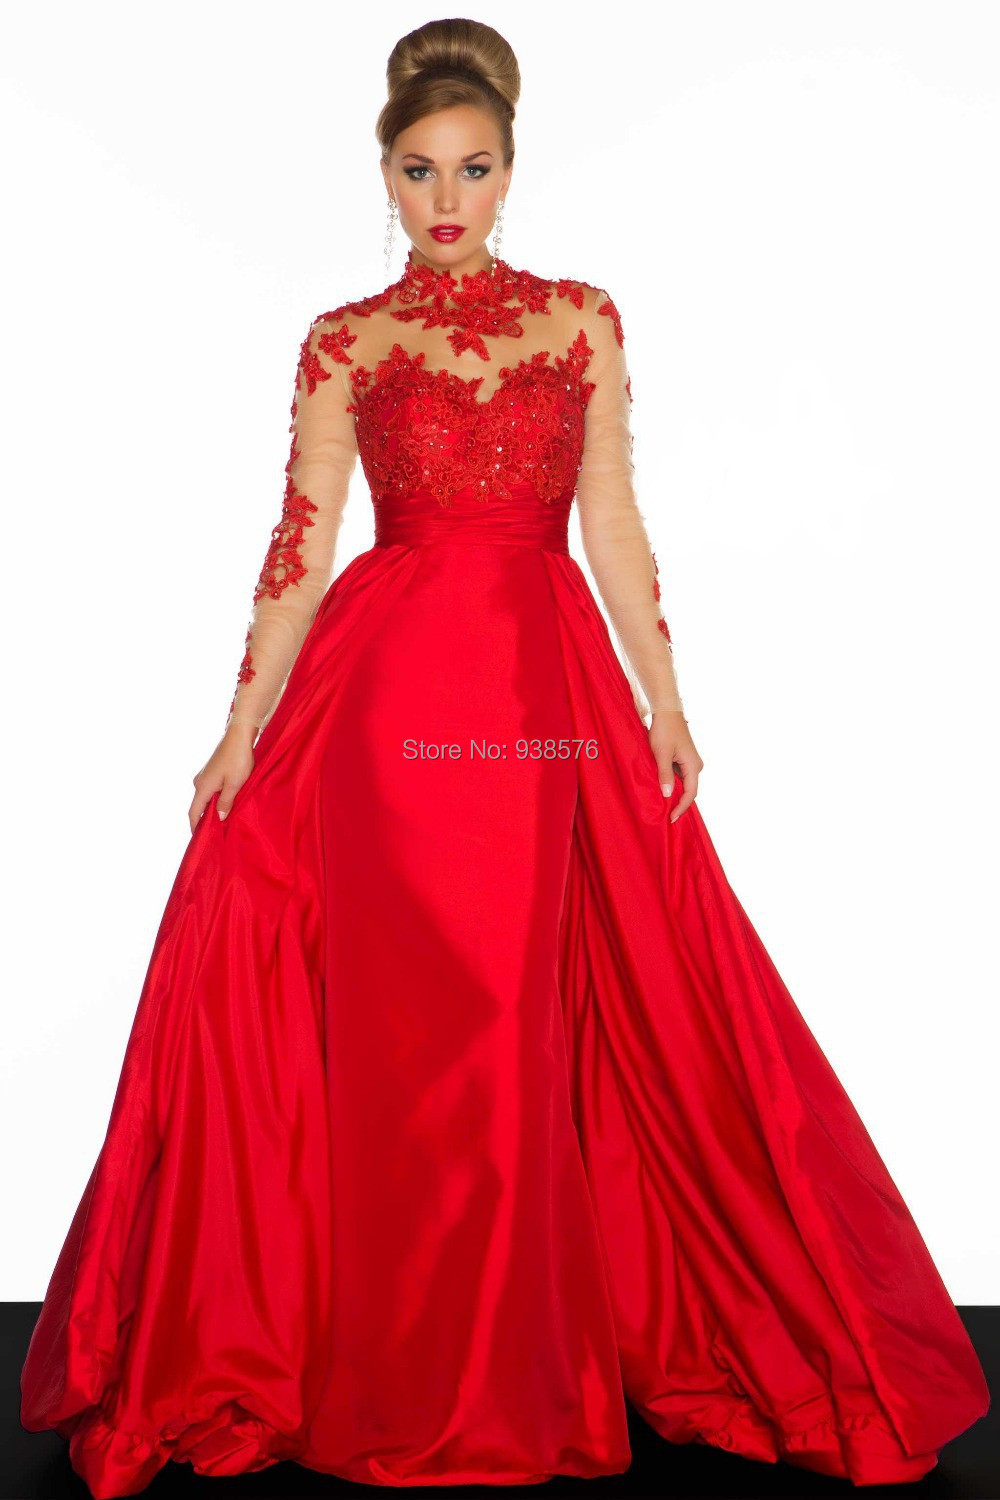 Plus Size Red And Black Ball Gowns - Women\'s Gowns And ...